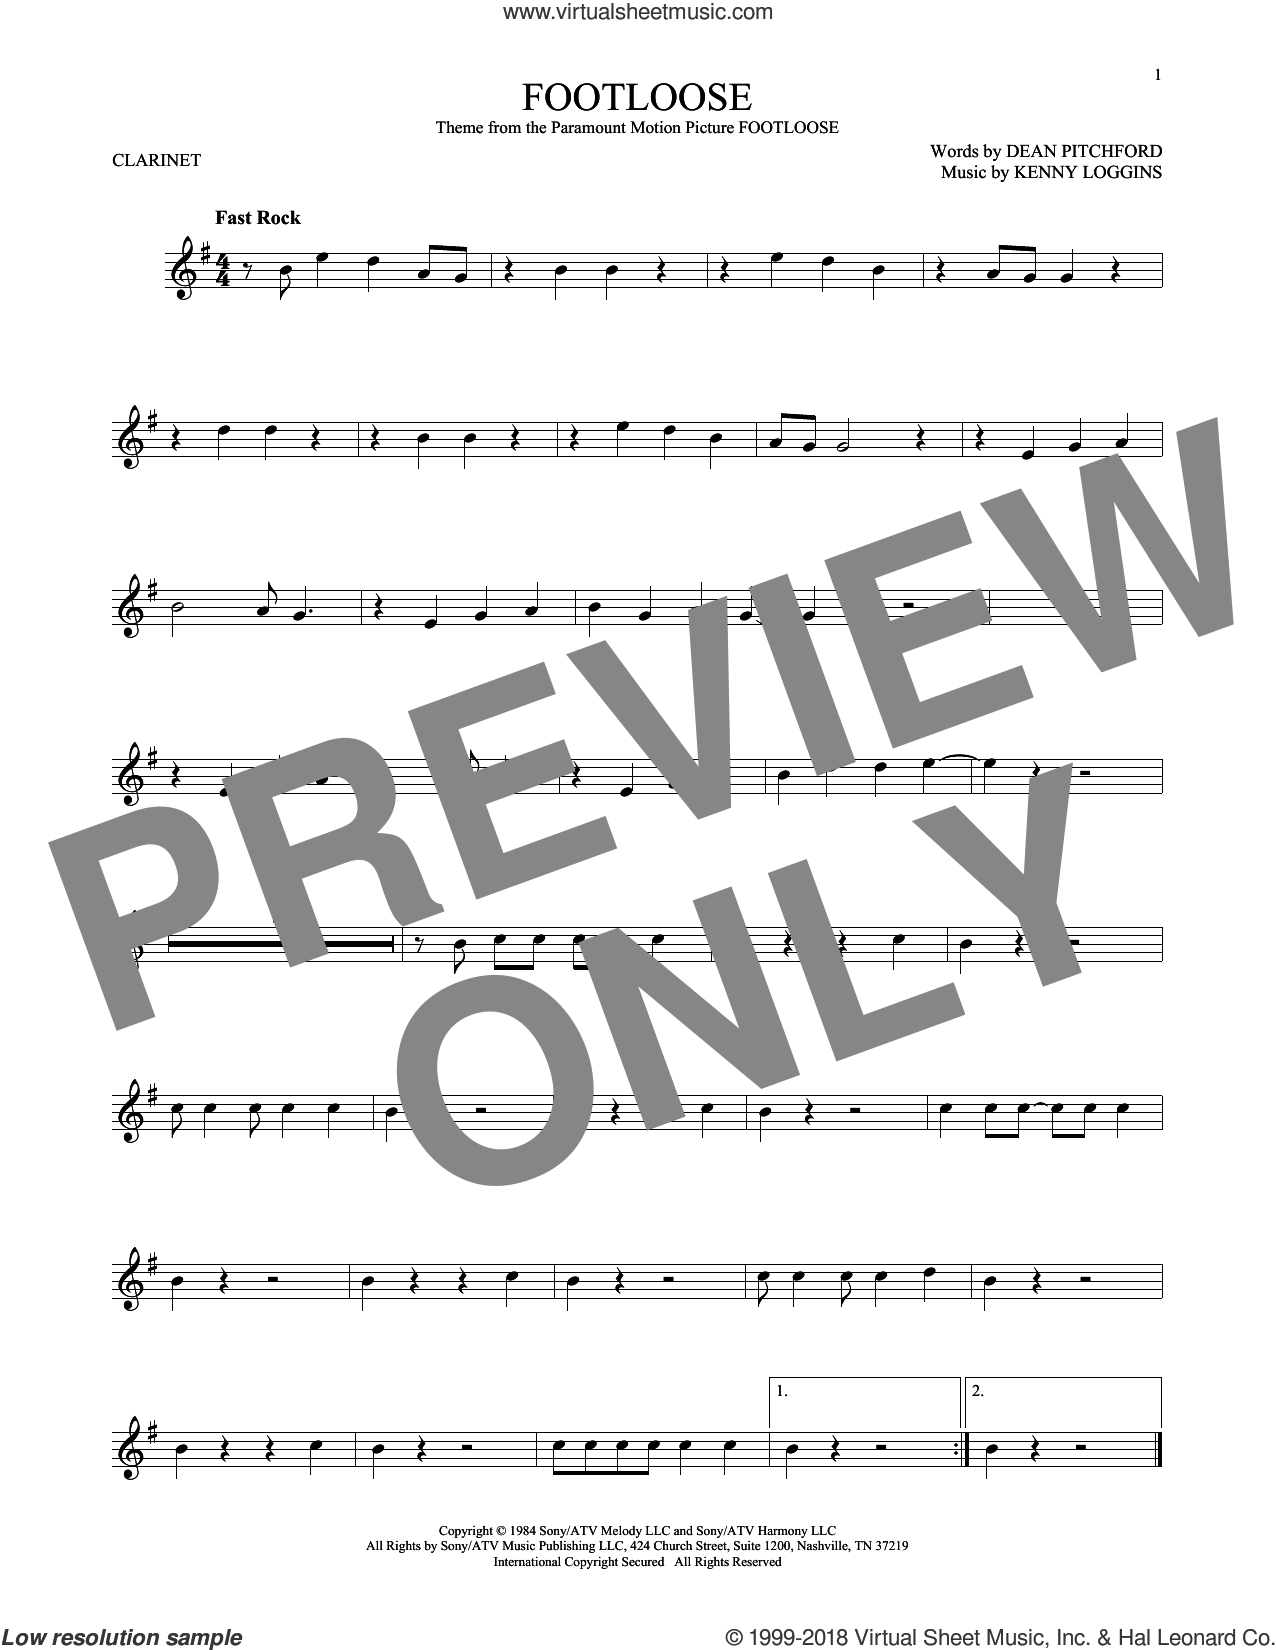 Footloose sheet music for clarinet solo by Kenny Loggins, Blake Shelton and Dean Pitchford, intermediate skill level